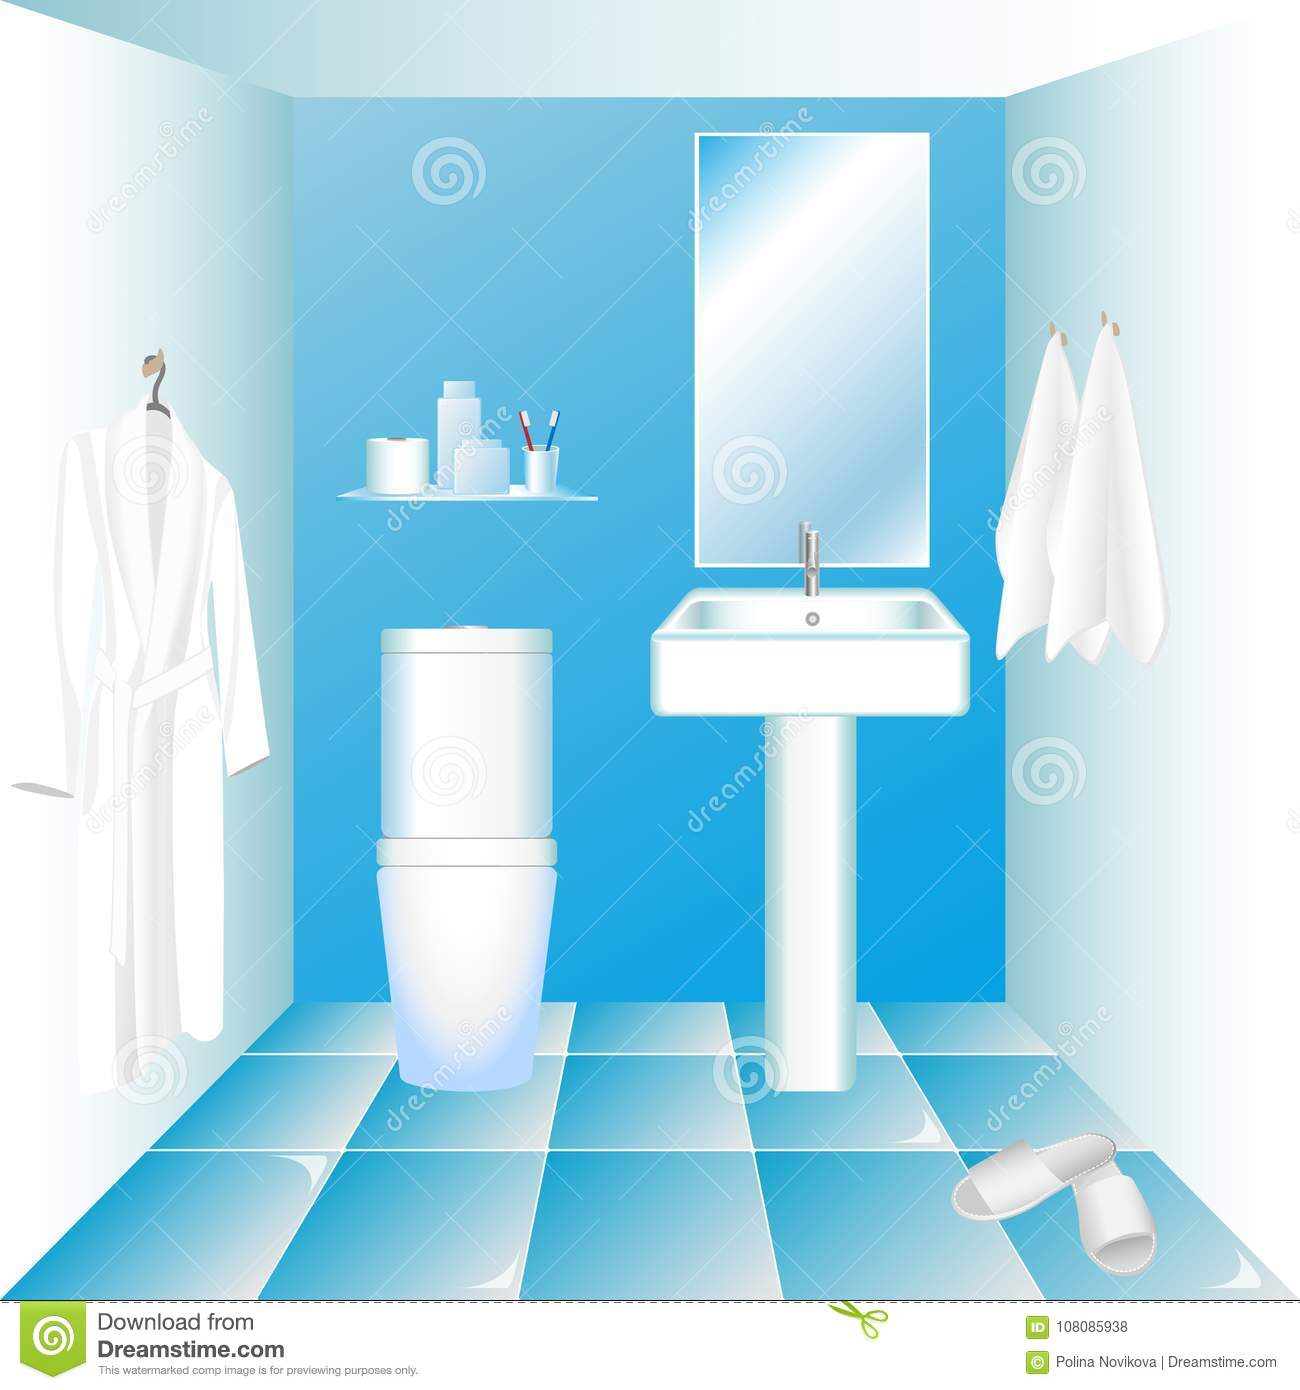 Water Closet Interior With Lavatory Pan, Wash Sink, Mirror And ...